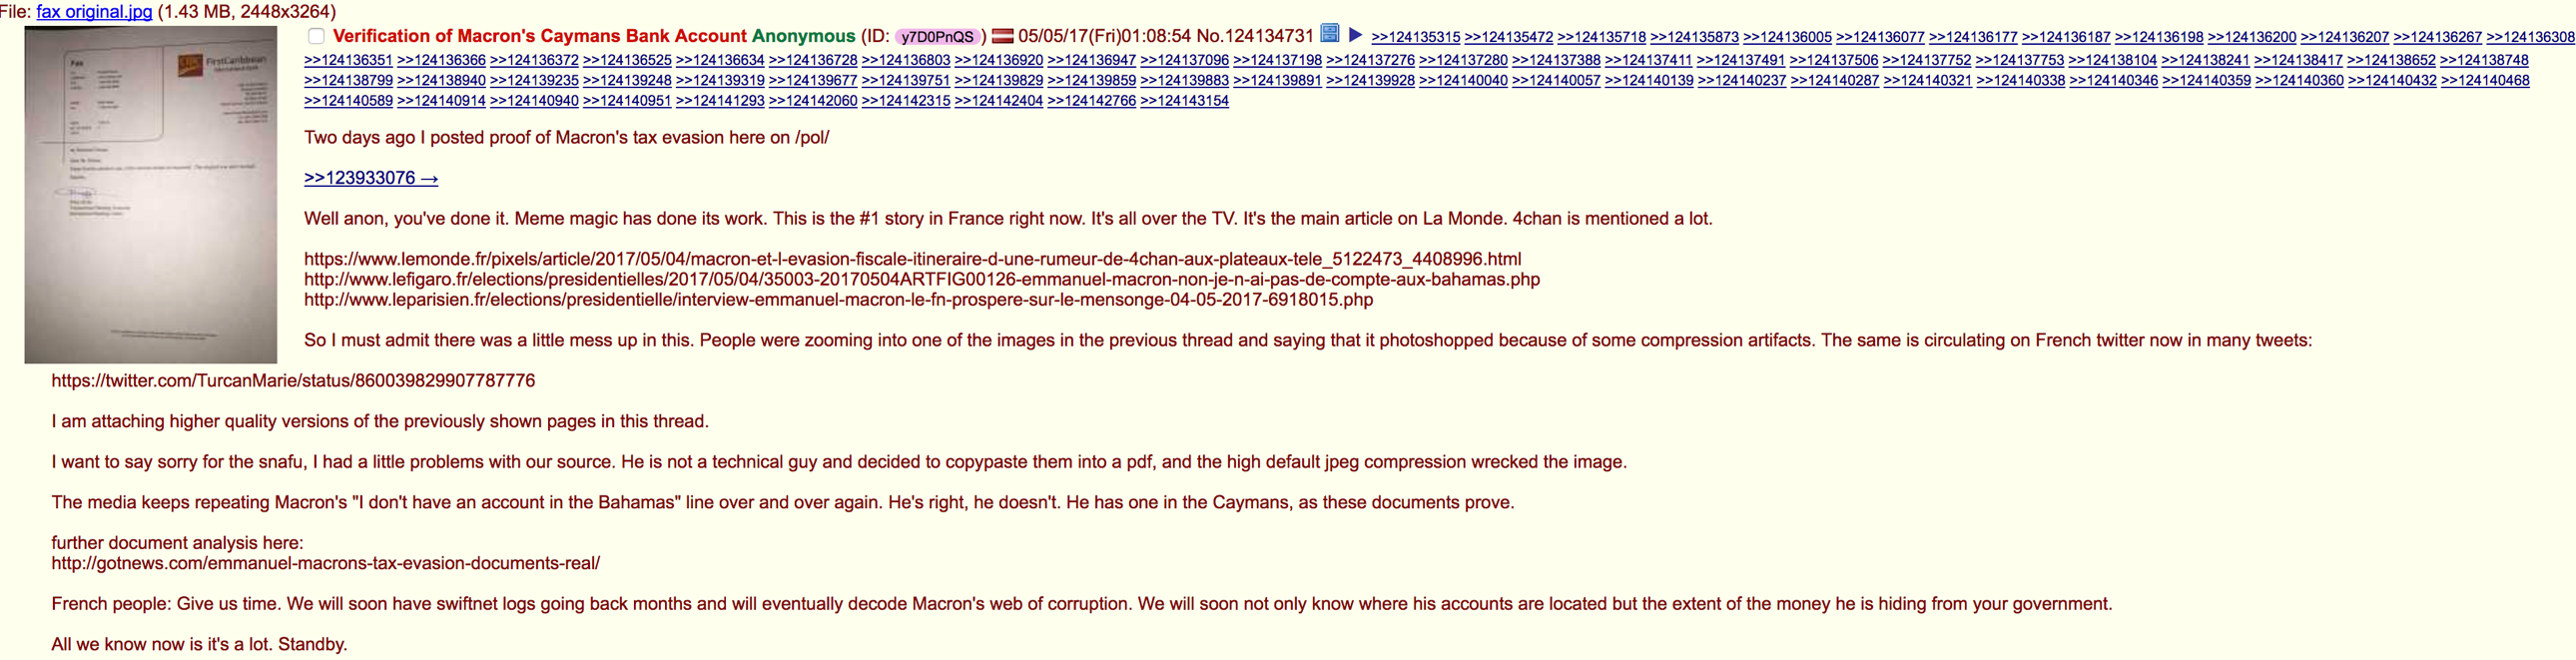 4Chan on Friday after deception uncovered on MacronLeaks